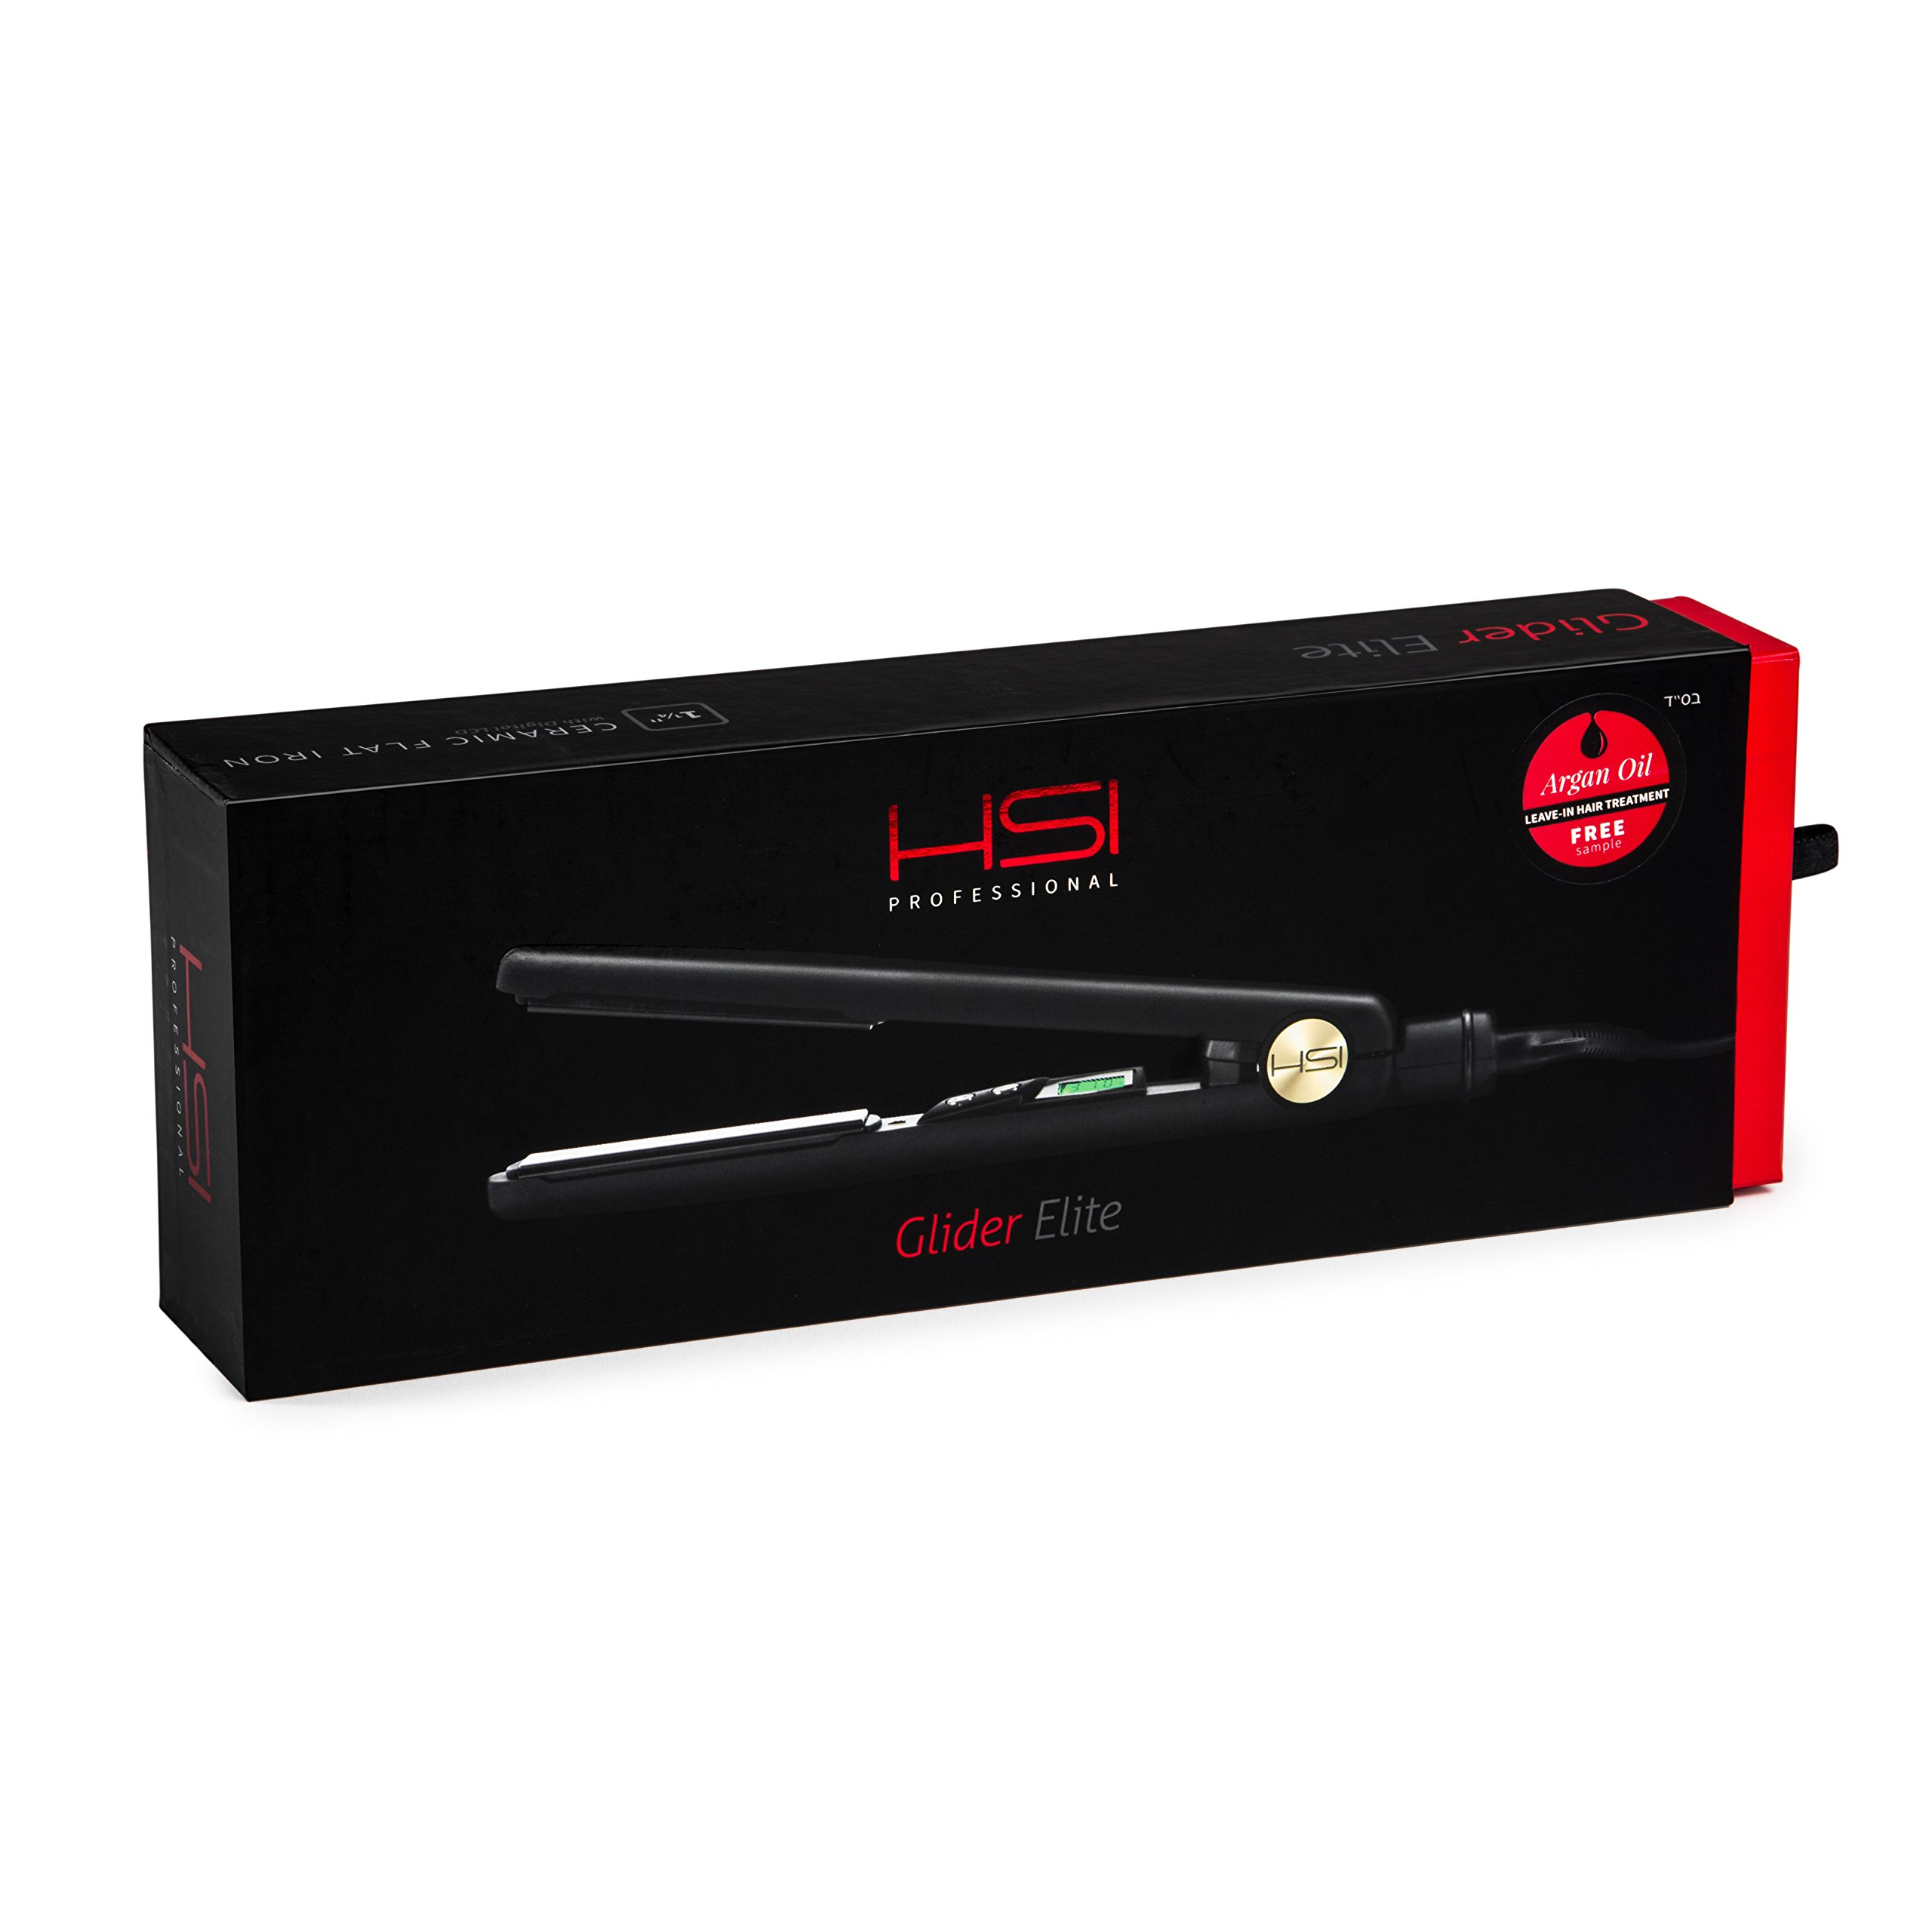 HSI Glider Elite Professional Flat Iron | For All Hair Types | For Faster, More Precise Styling | Ceramic Tourmaline Plates | Includes 1 Year Warranty, HSI Style Guide, & 5ml Argan Oil Treatment |